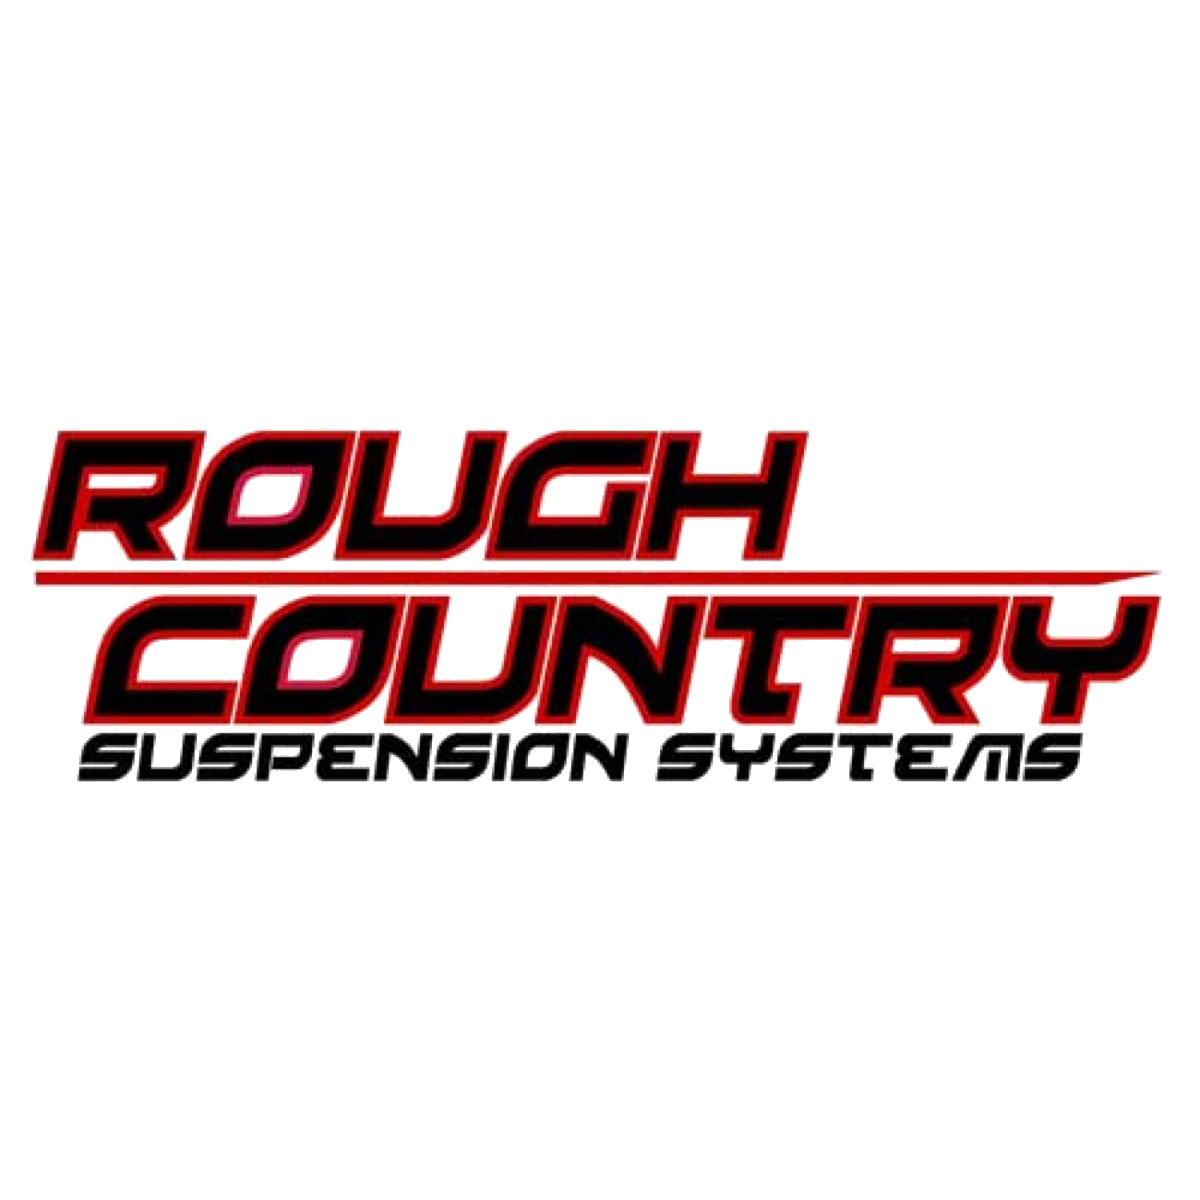 Rough country logo png. Suspension custom offsets about